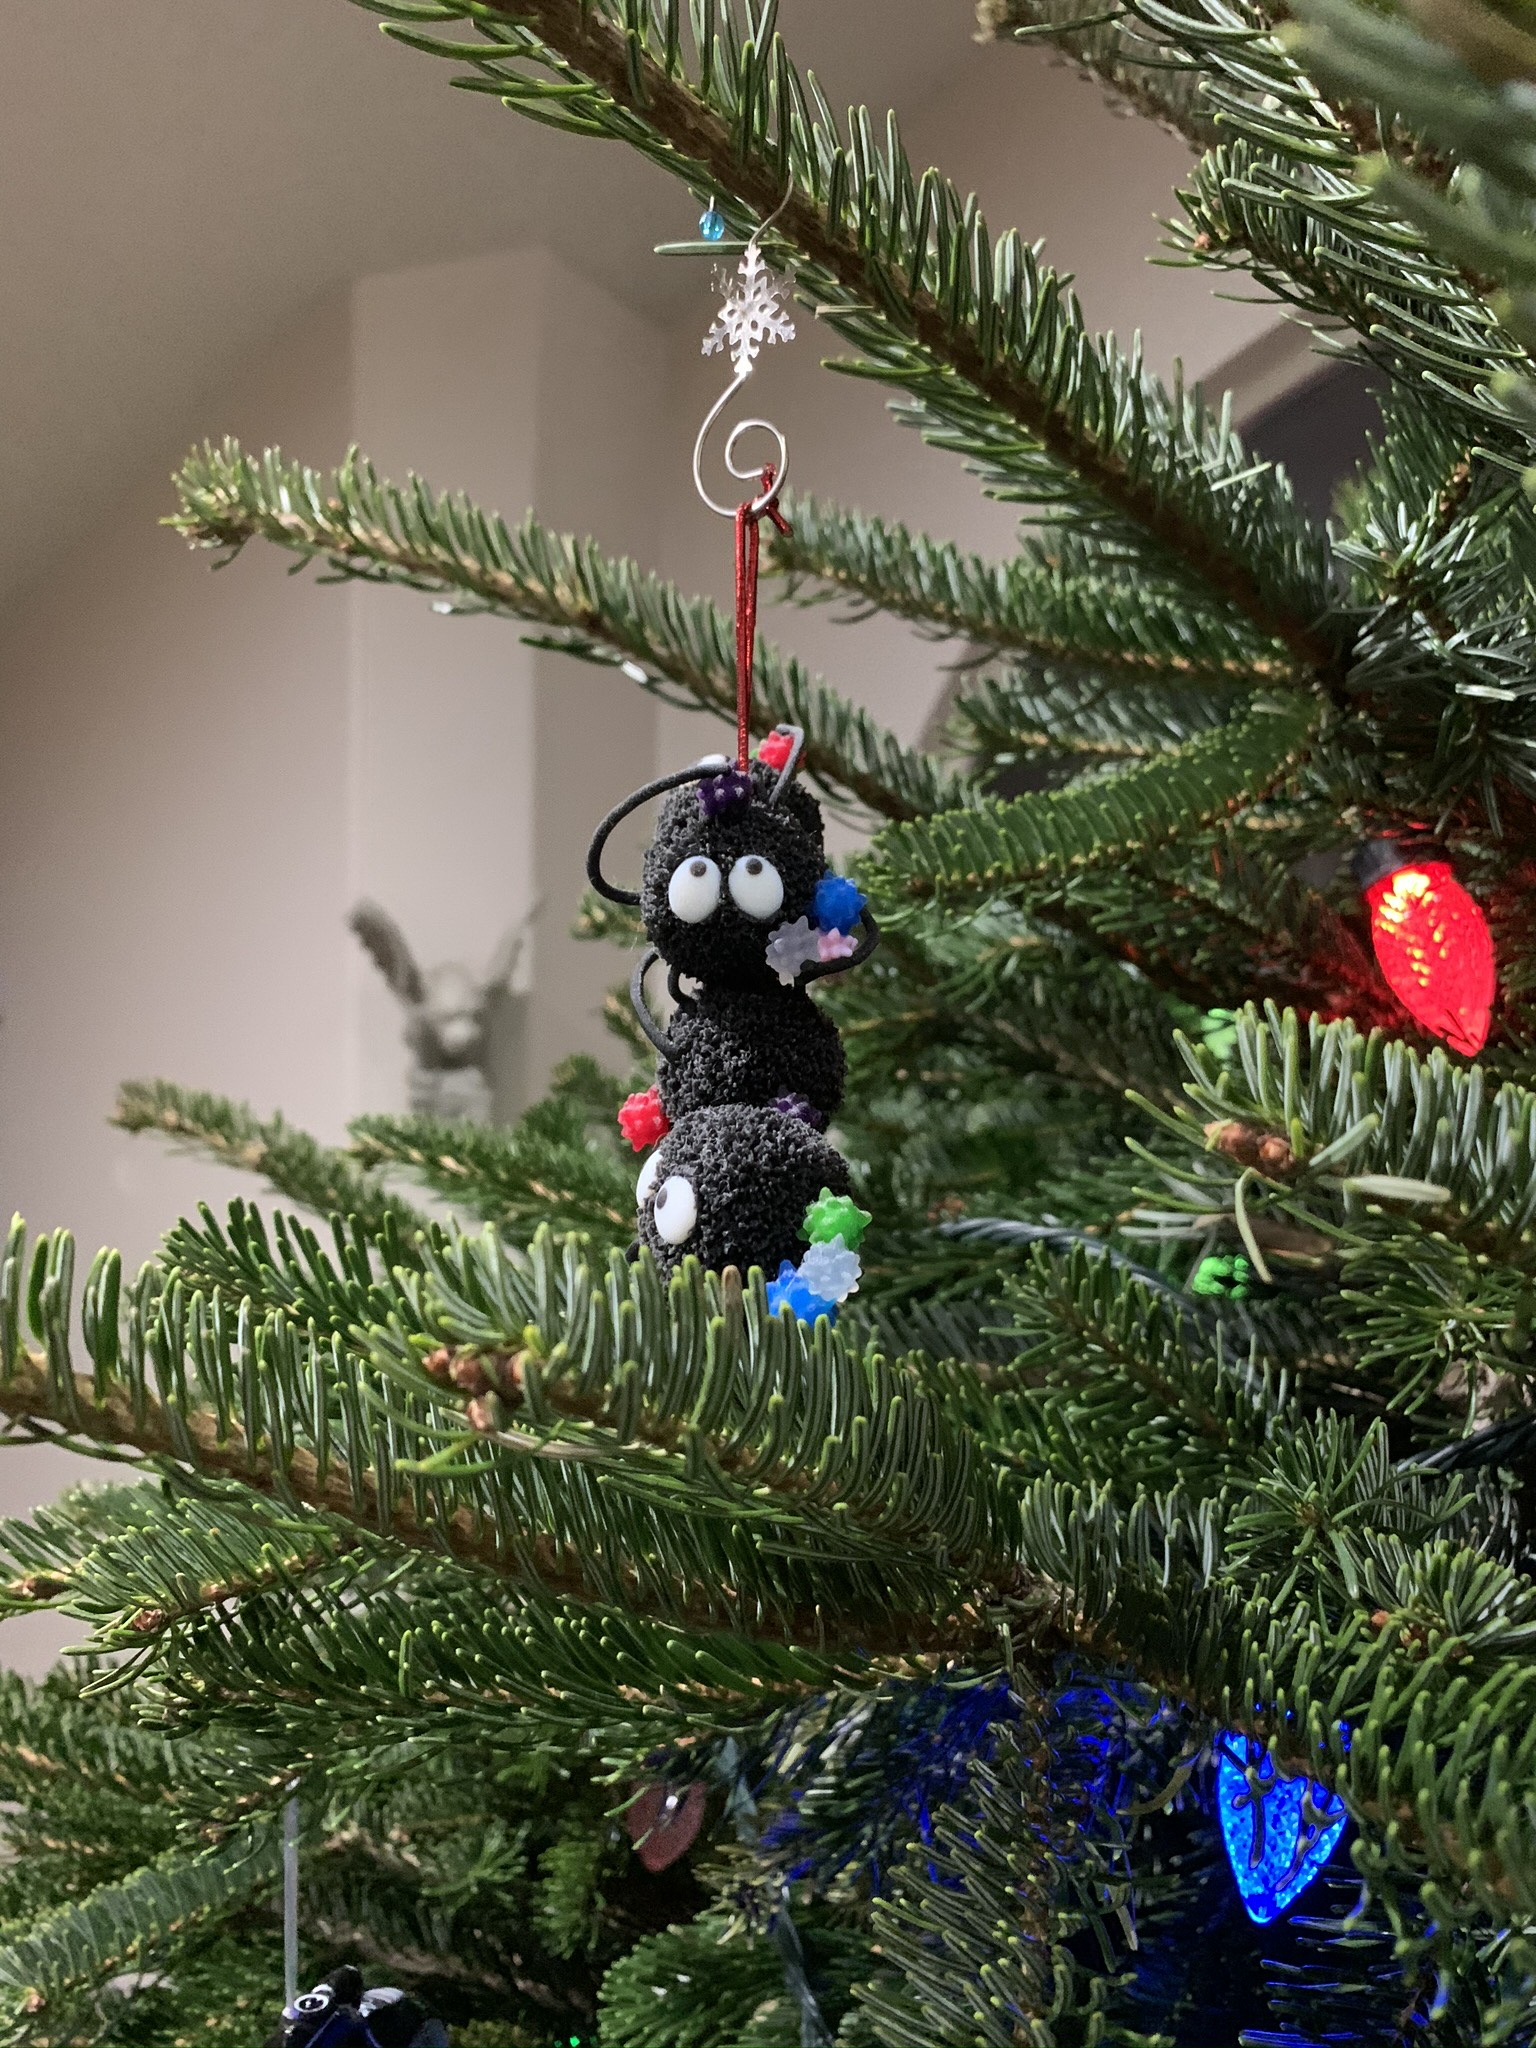 Suit Sprites Ornament